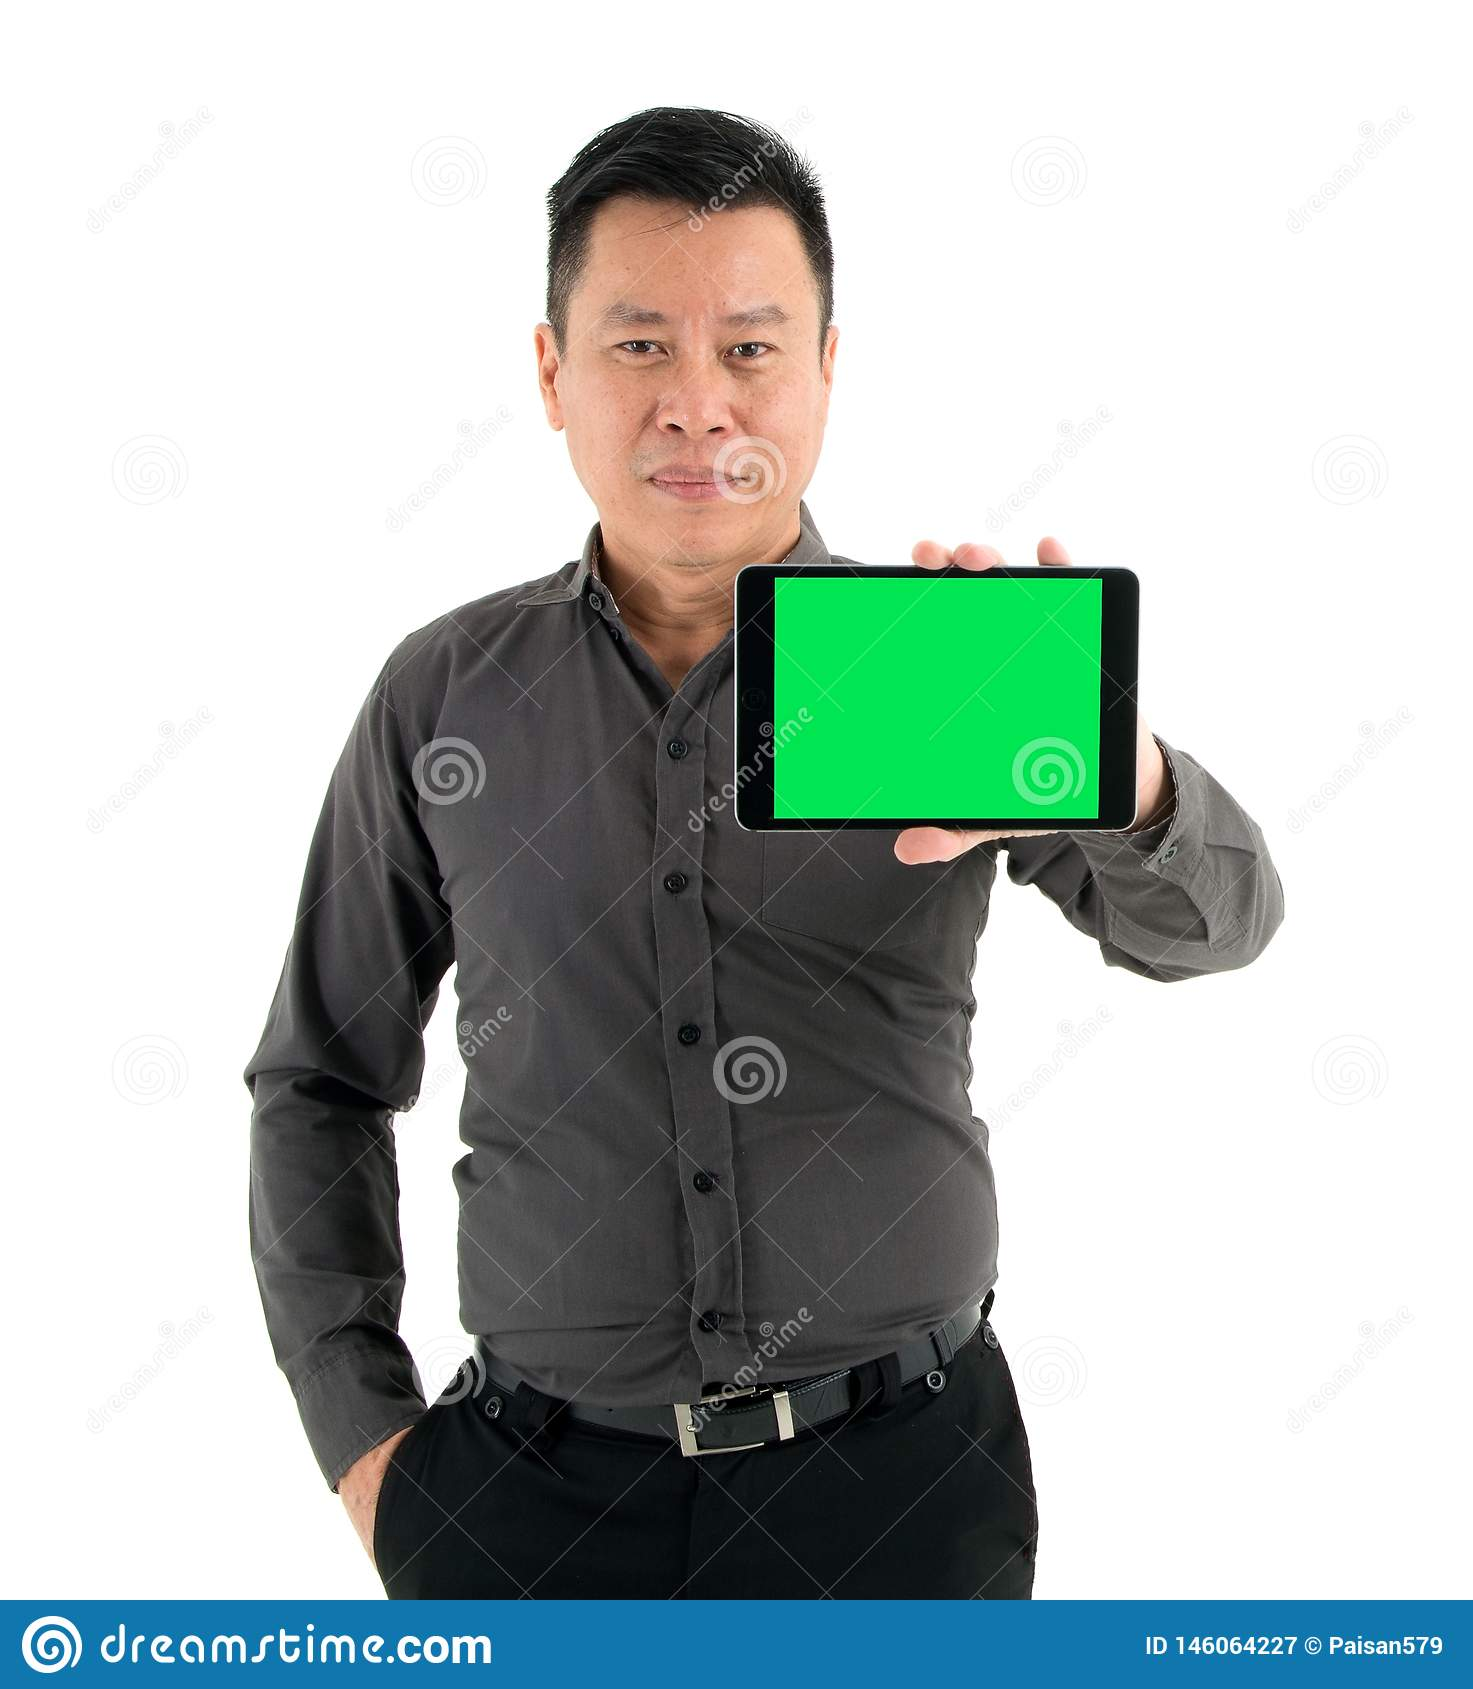 Businessmen in a brown shirt holding a tablet isolated on white background